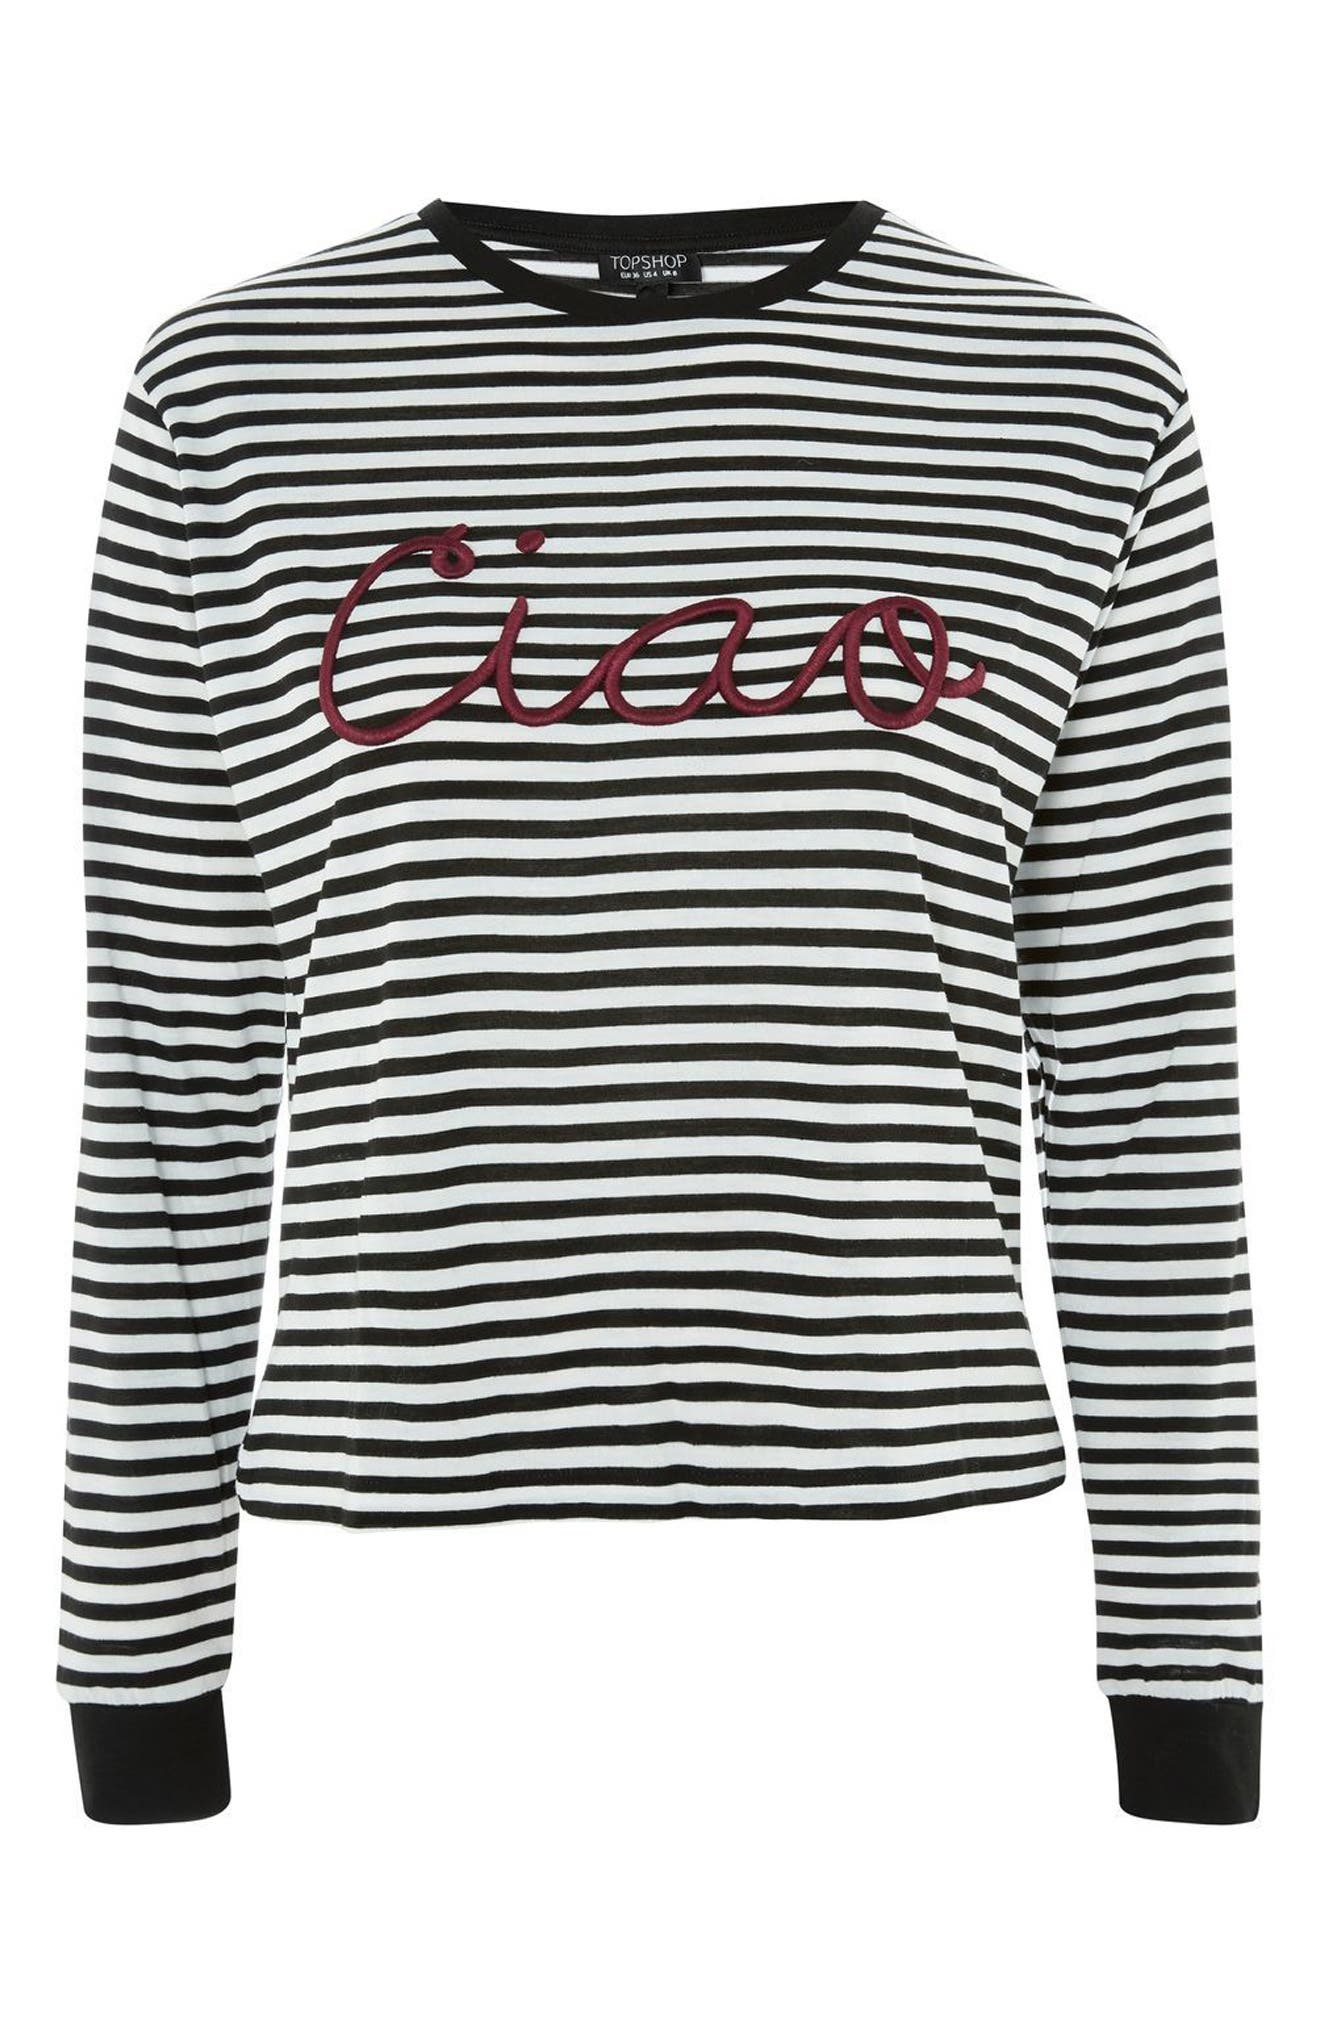 Embroidered Ciao Stripe Tee,                             Alternate thumbnail 3, color,                             001